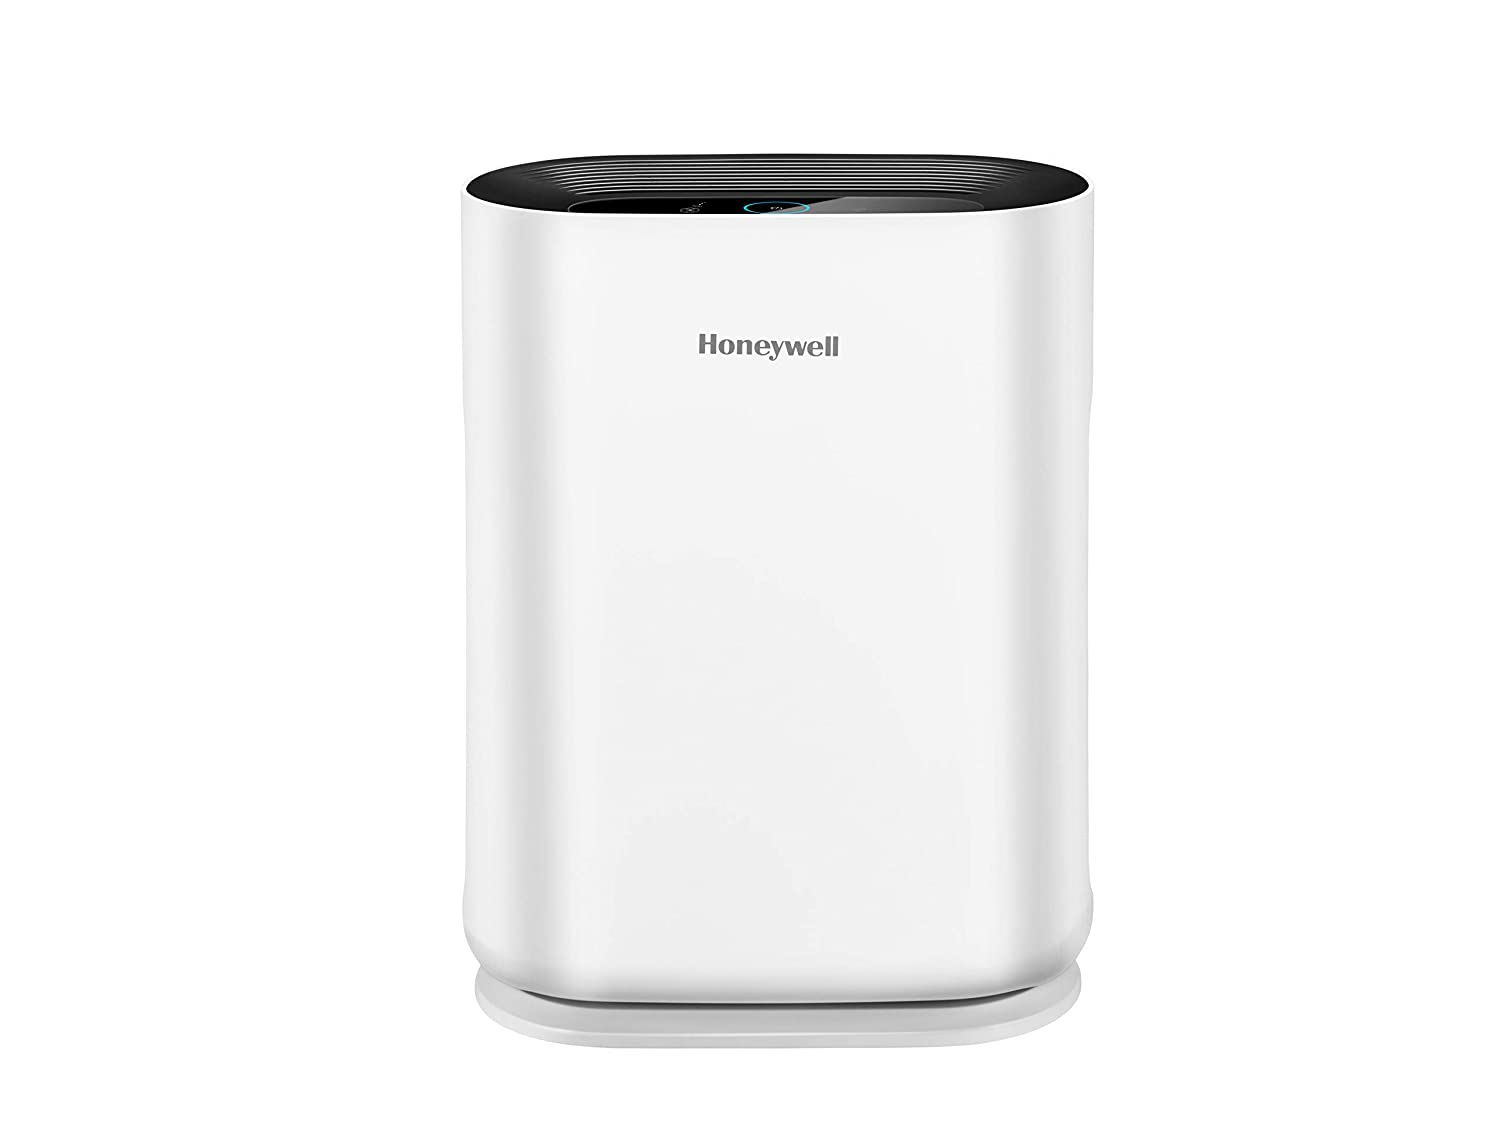 Honeywell HAC25M1201W Air Purifier